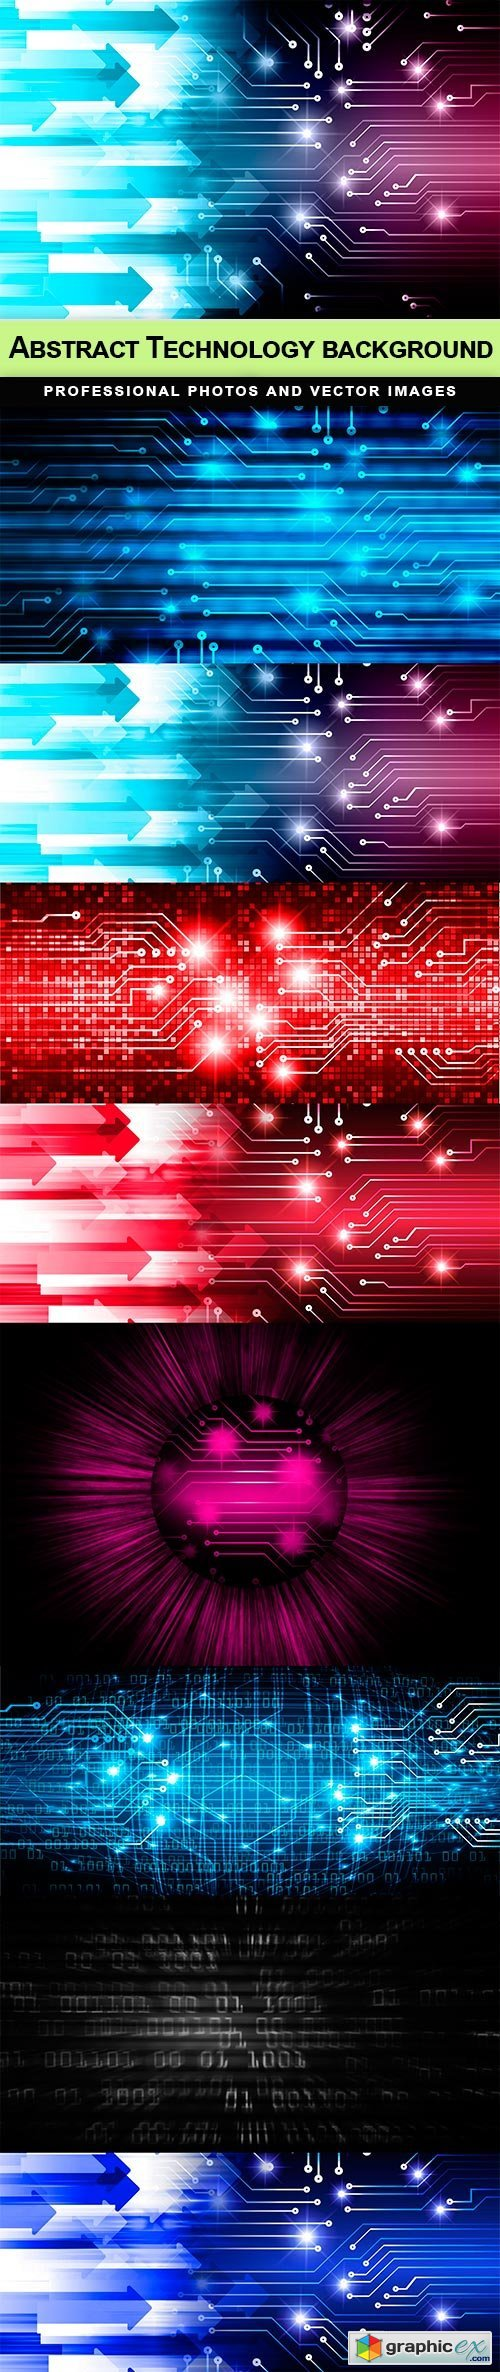 Abstract Technology background - 8 UHQ JPEG